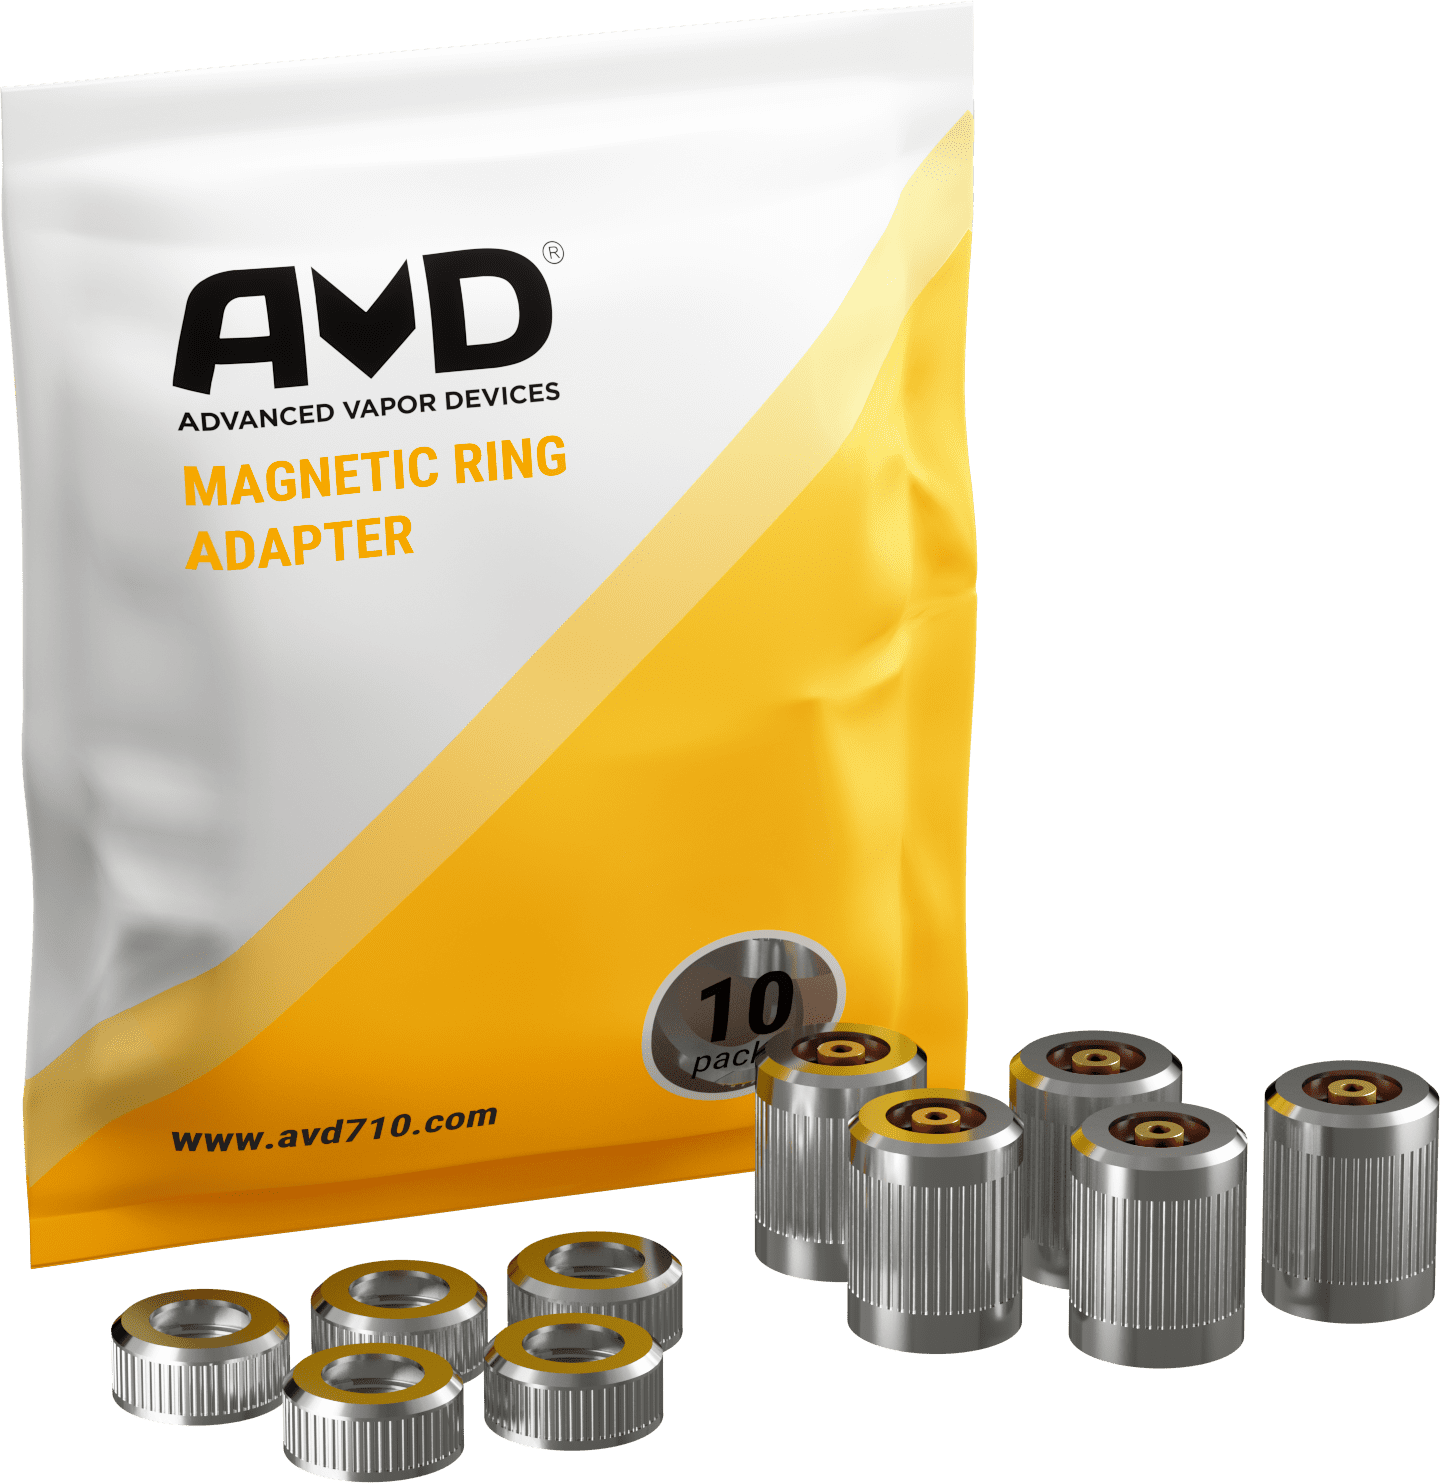 Magnetic adaptors with packaging 1